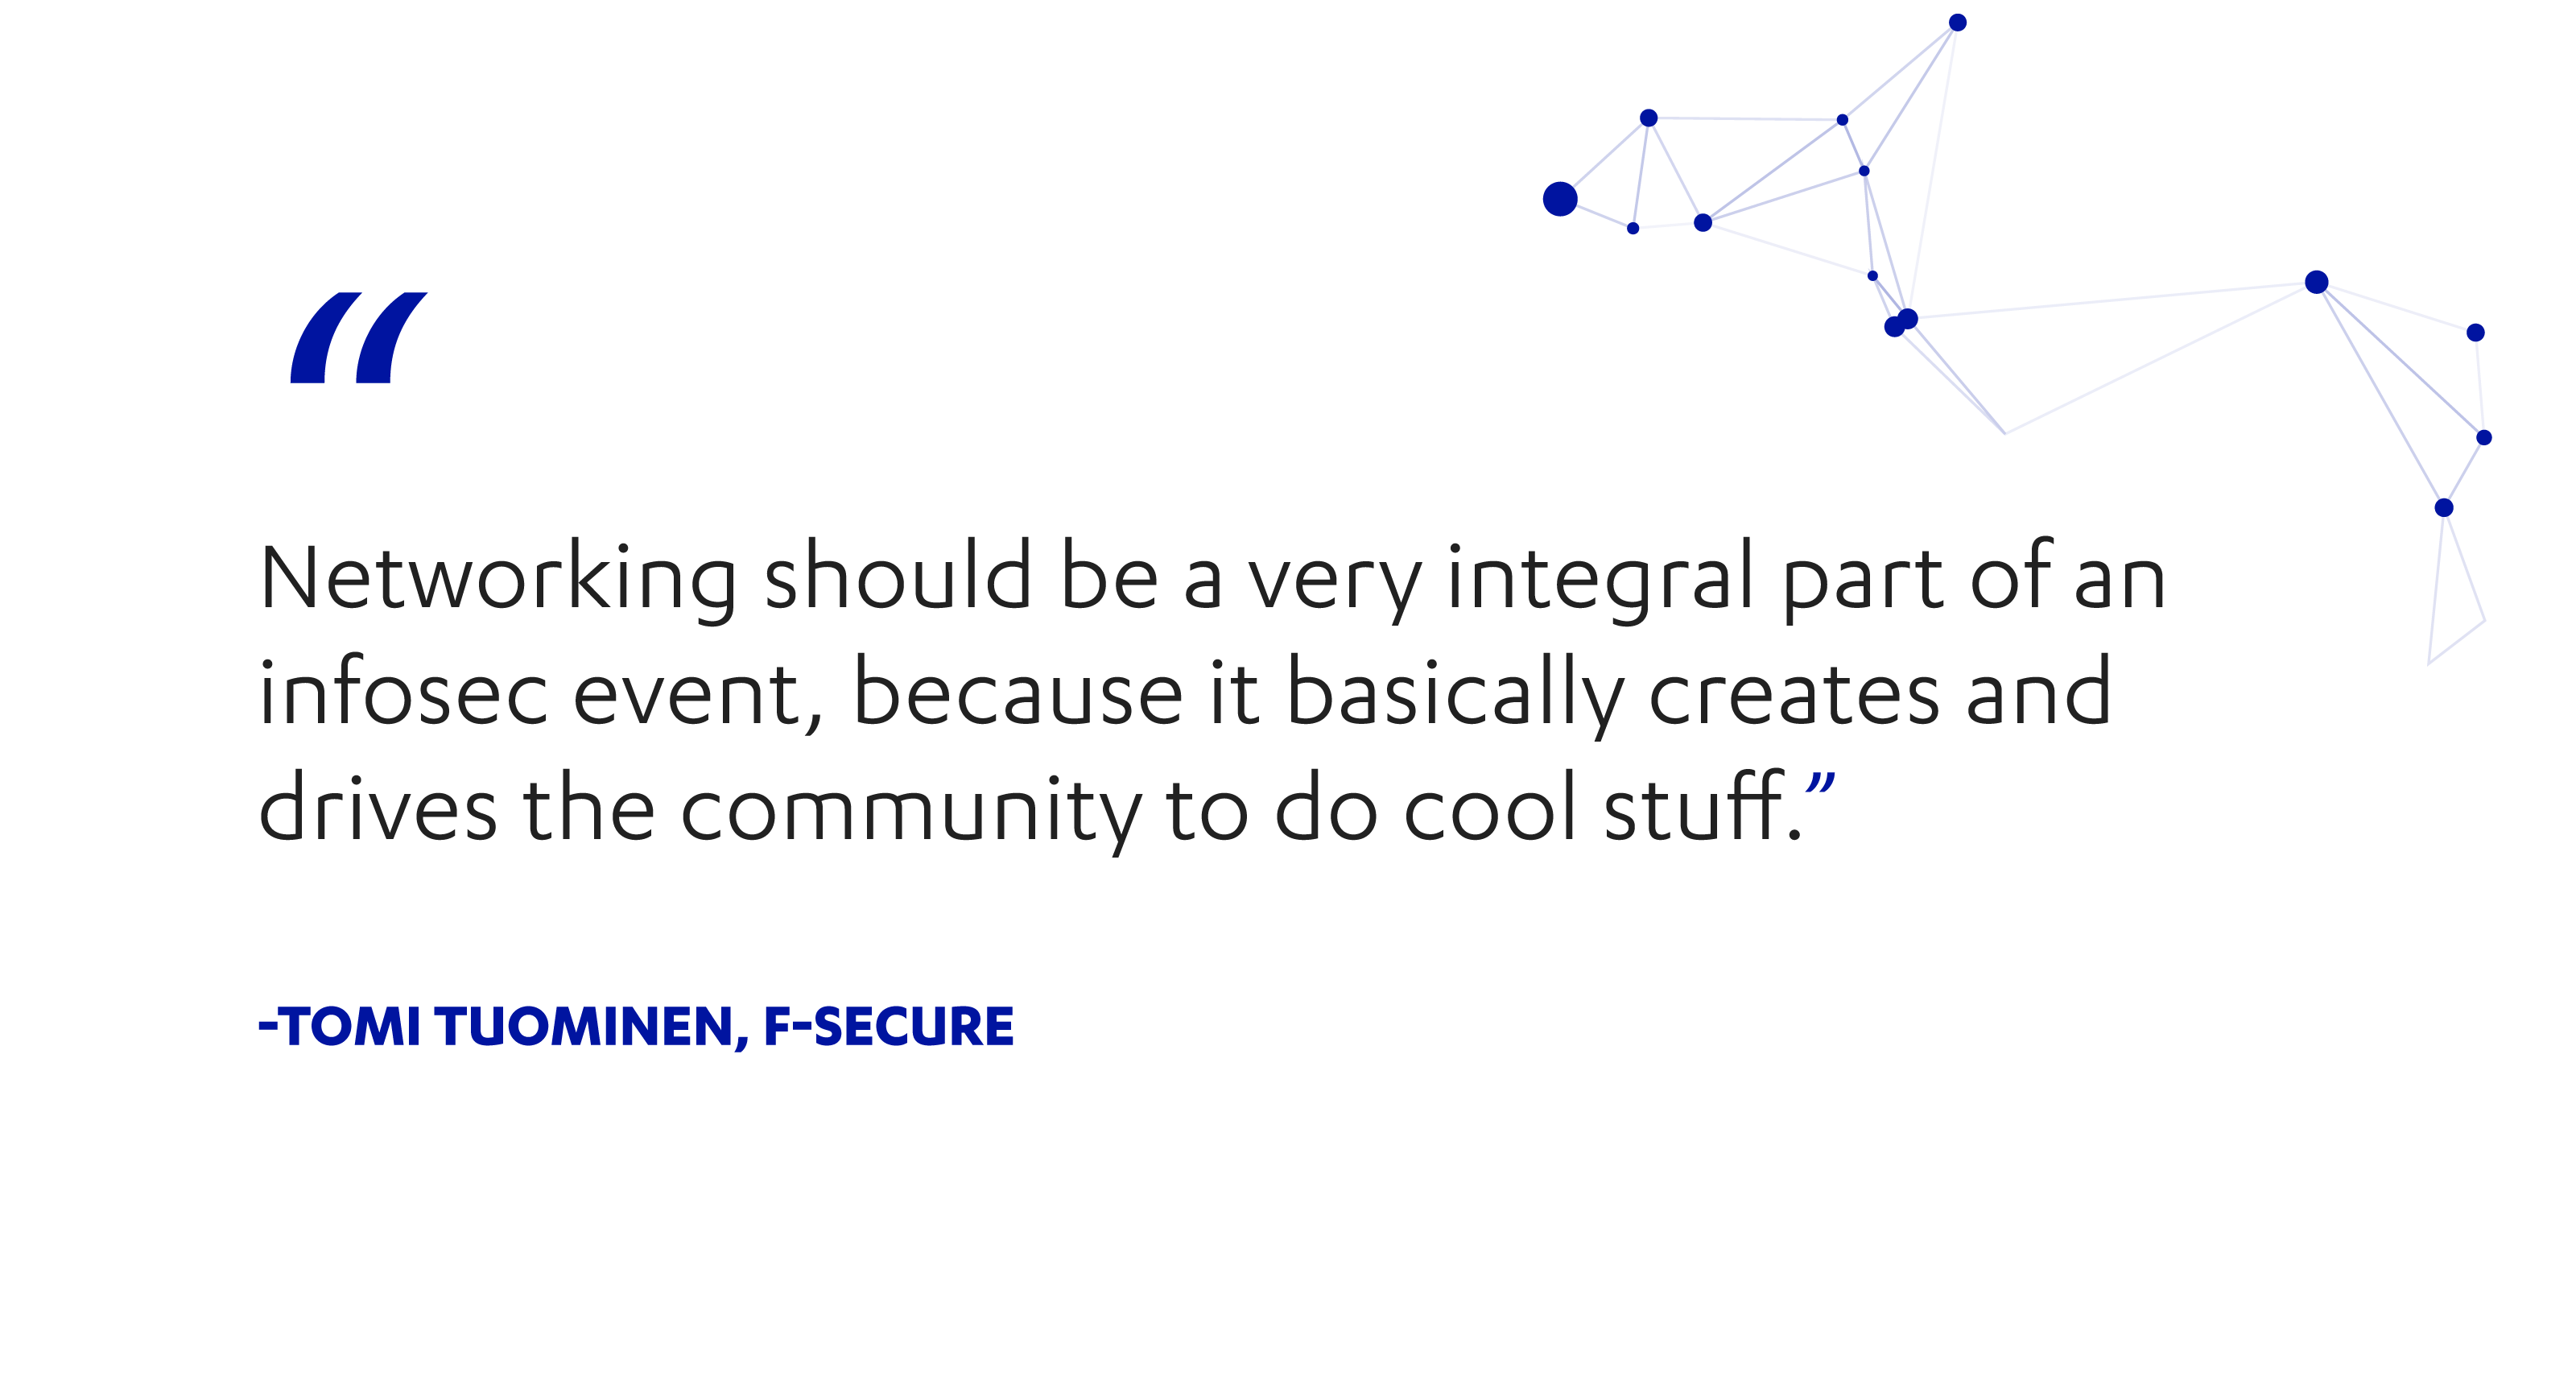 F-Secure's Tomi Tuominen on networking at infosec conferences